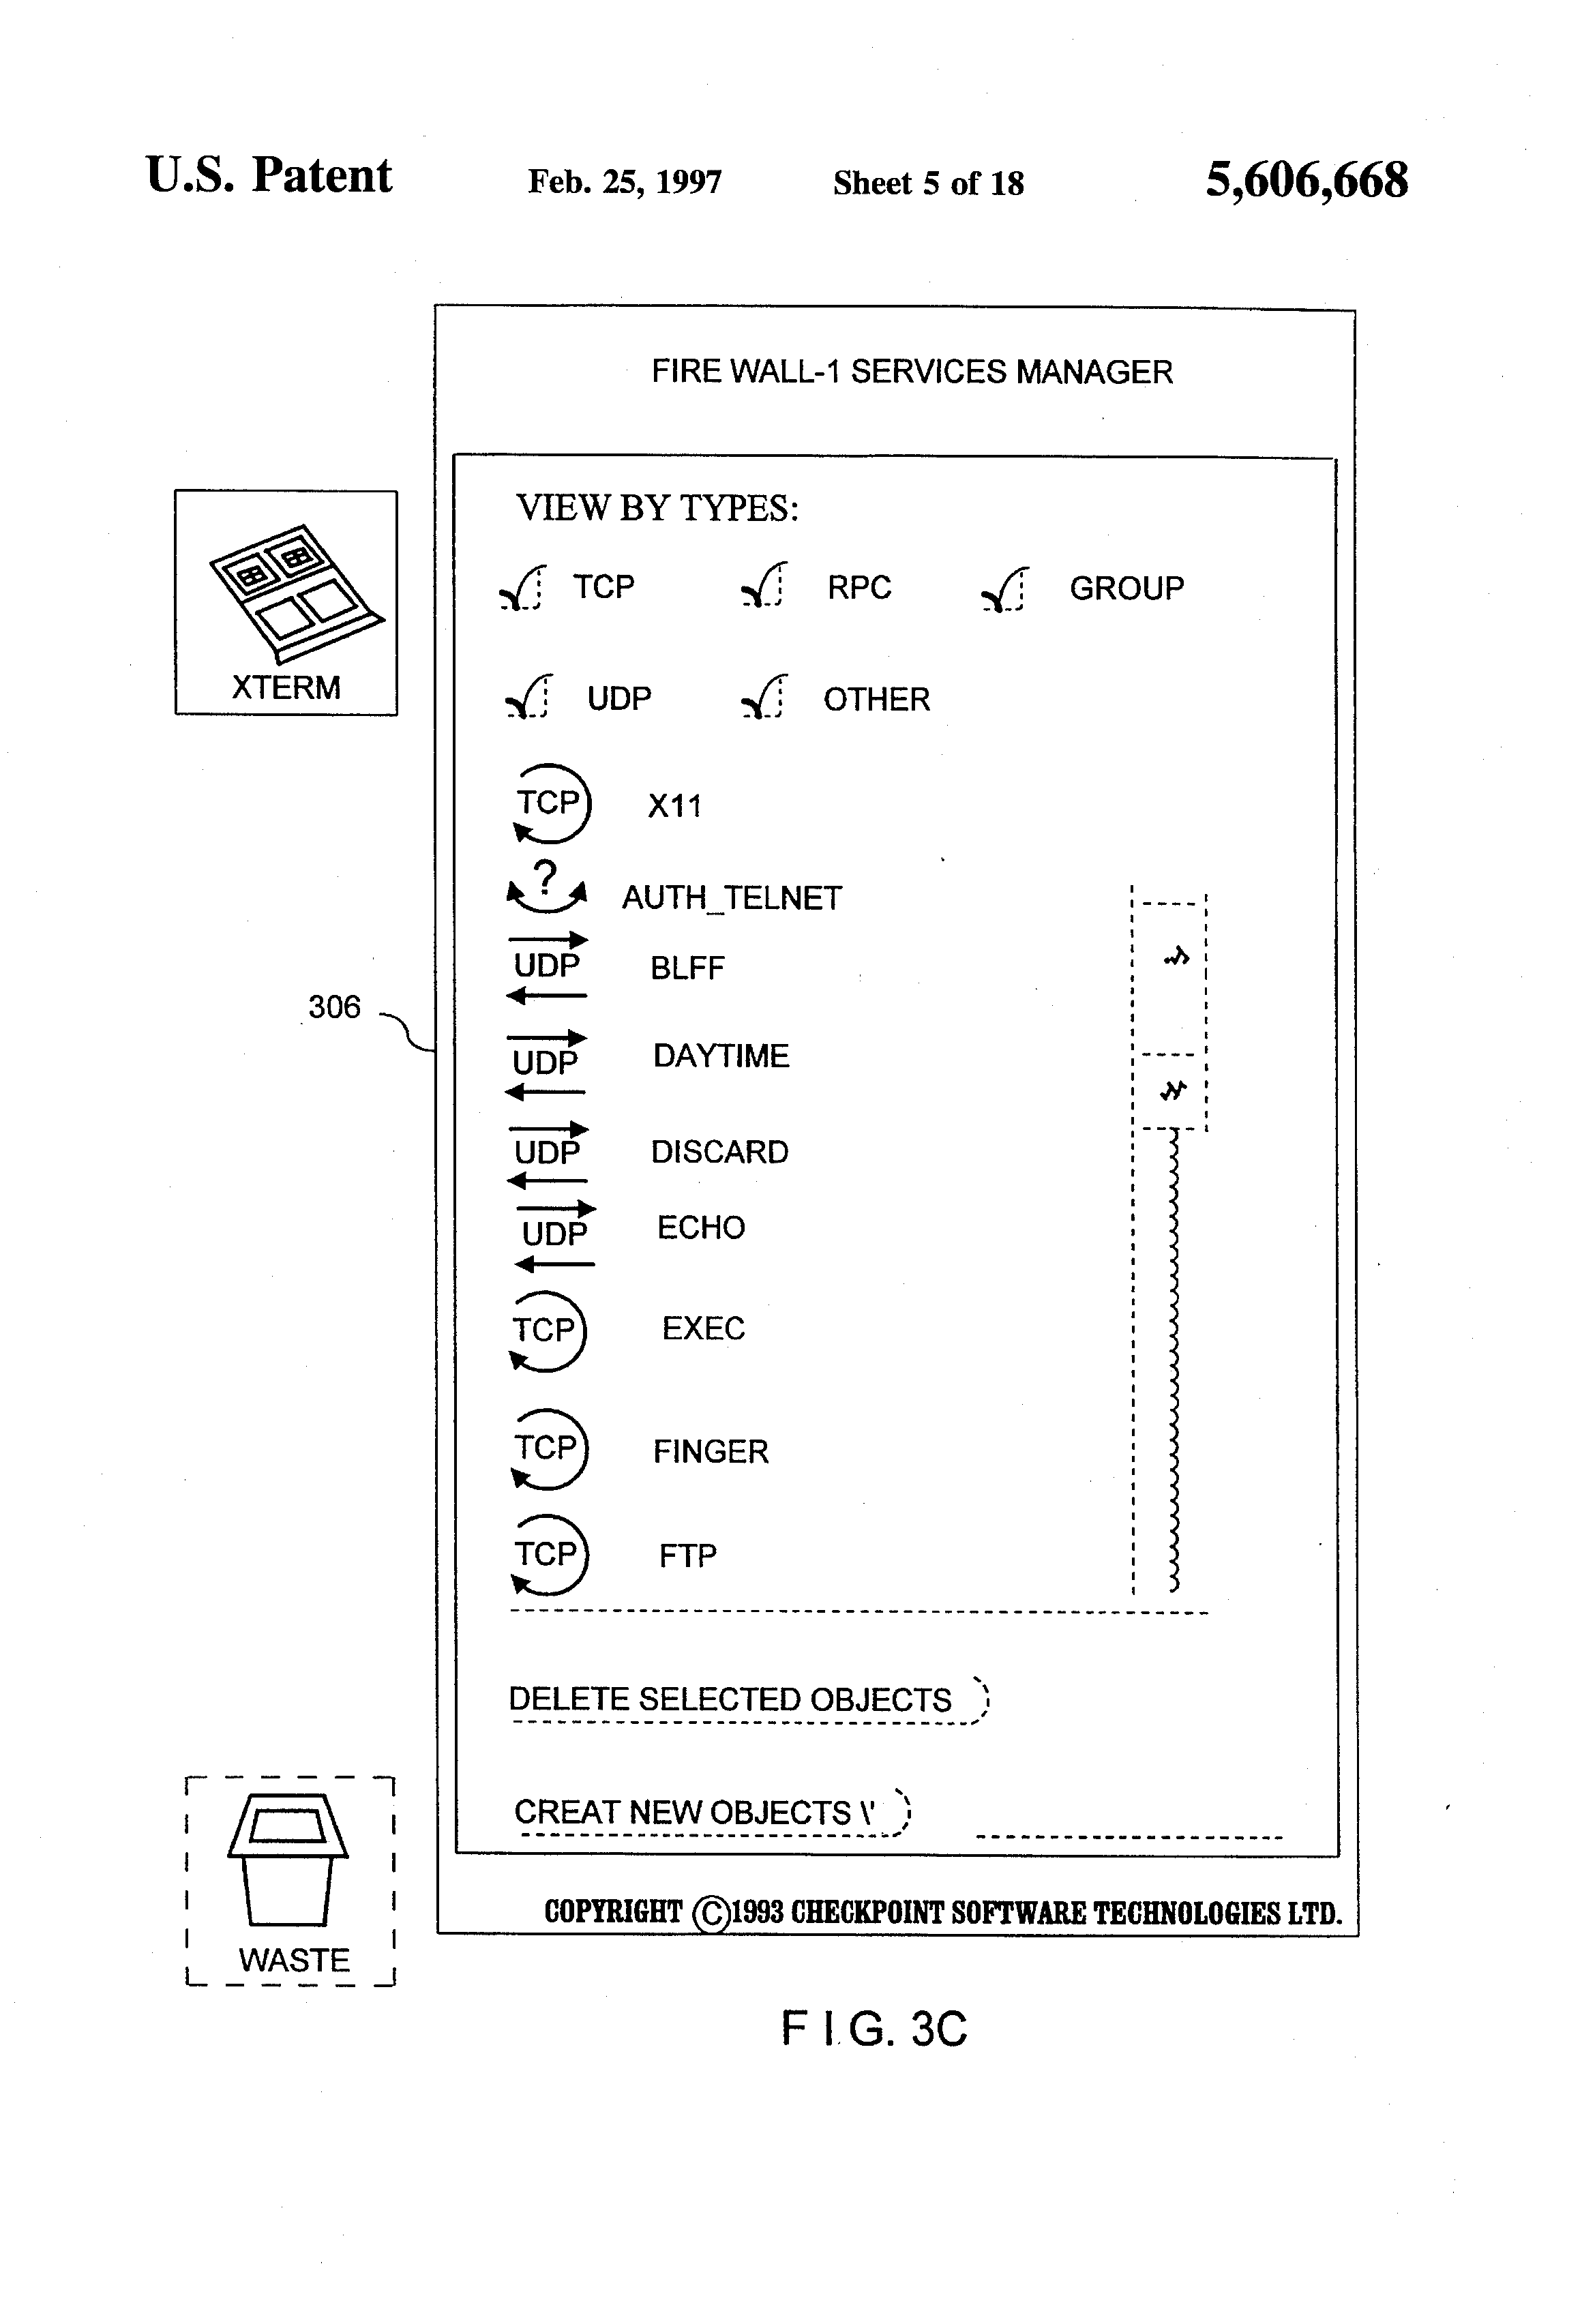 US 5606668 A - System For Securing Inbound And Outbound Data